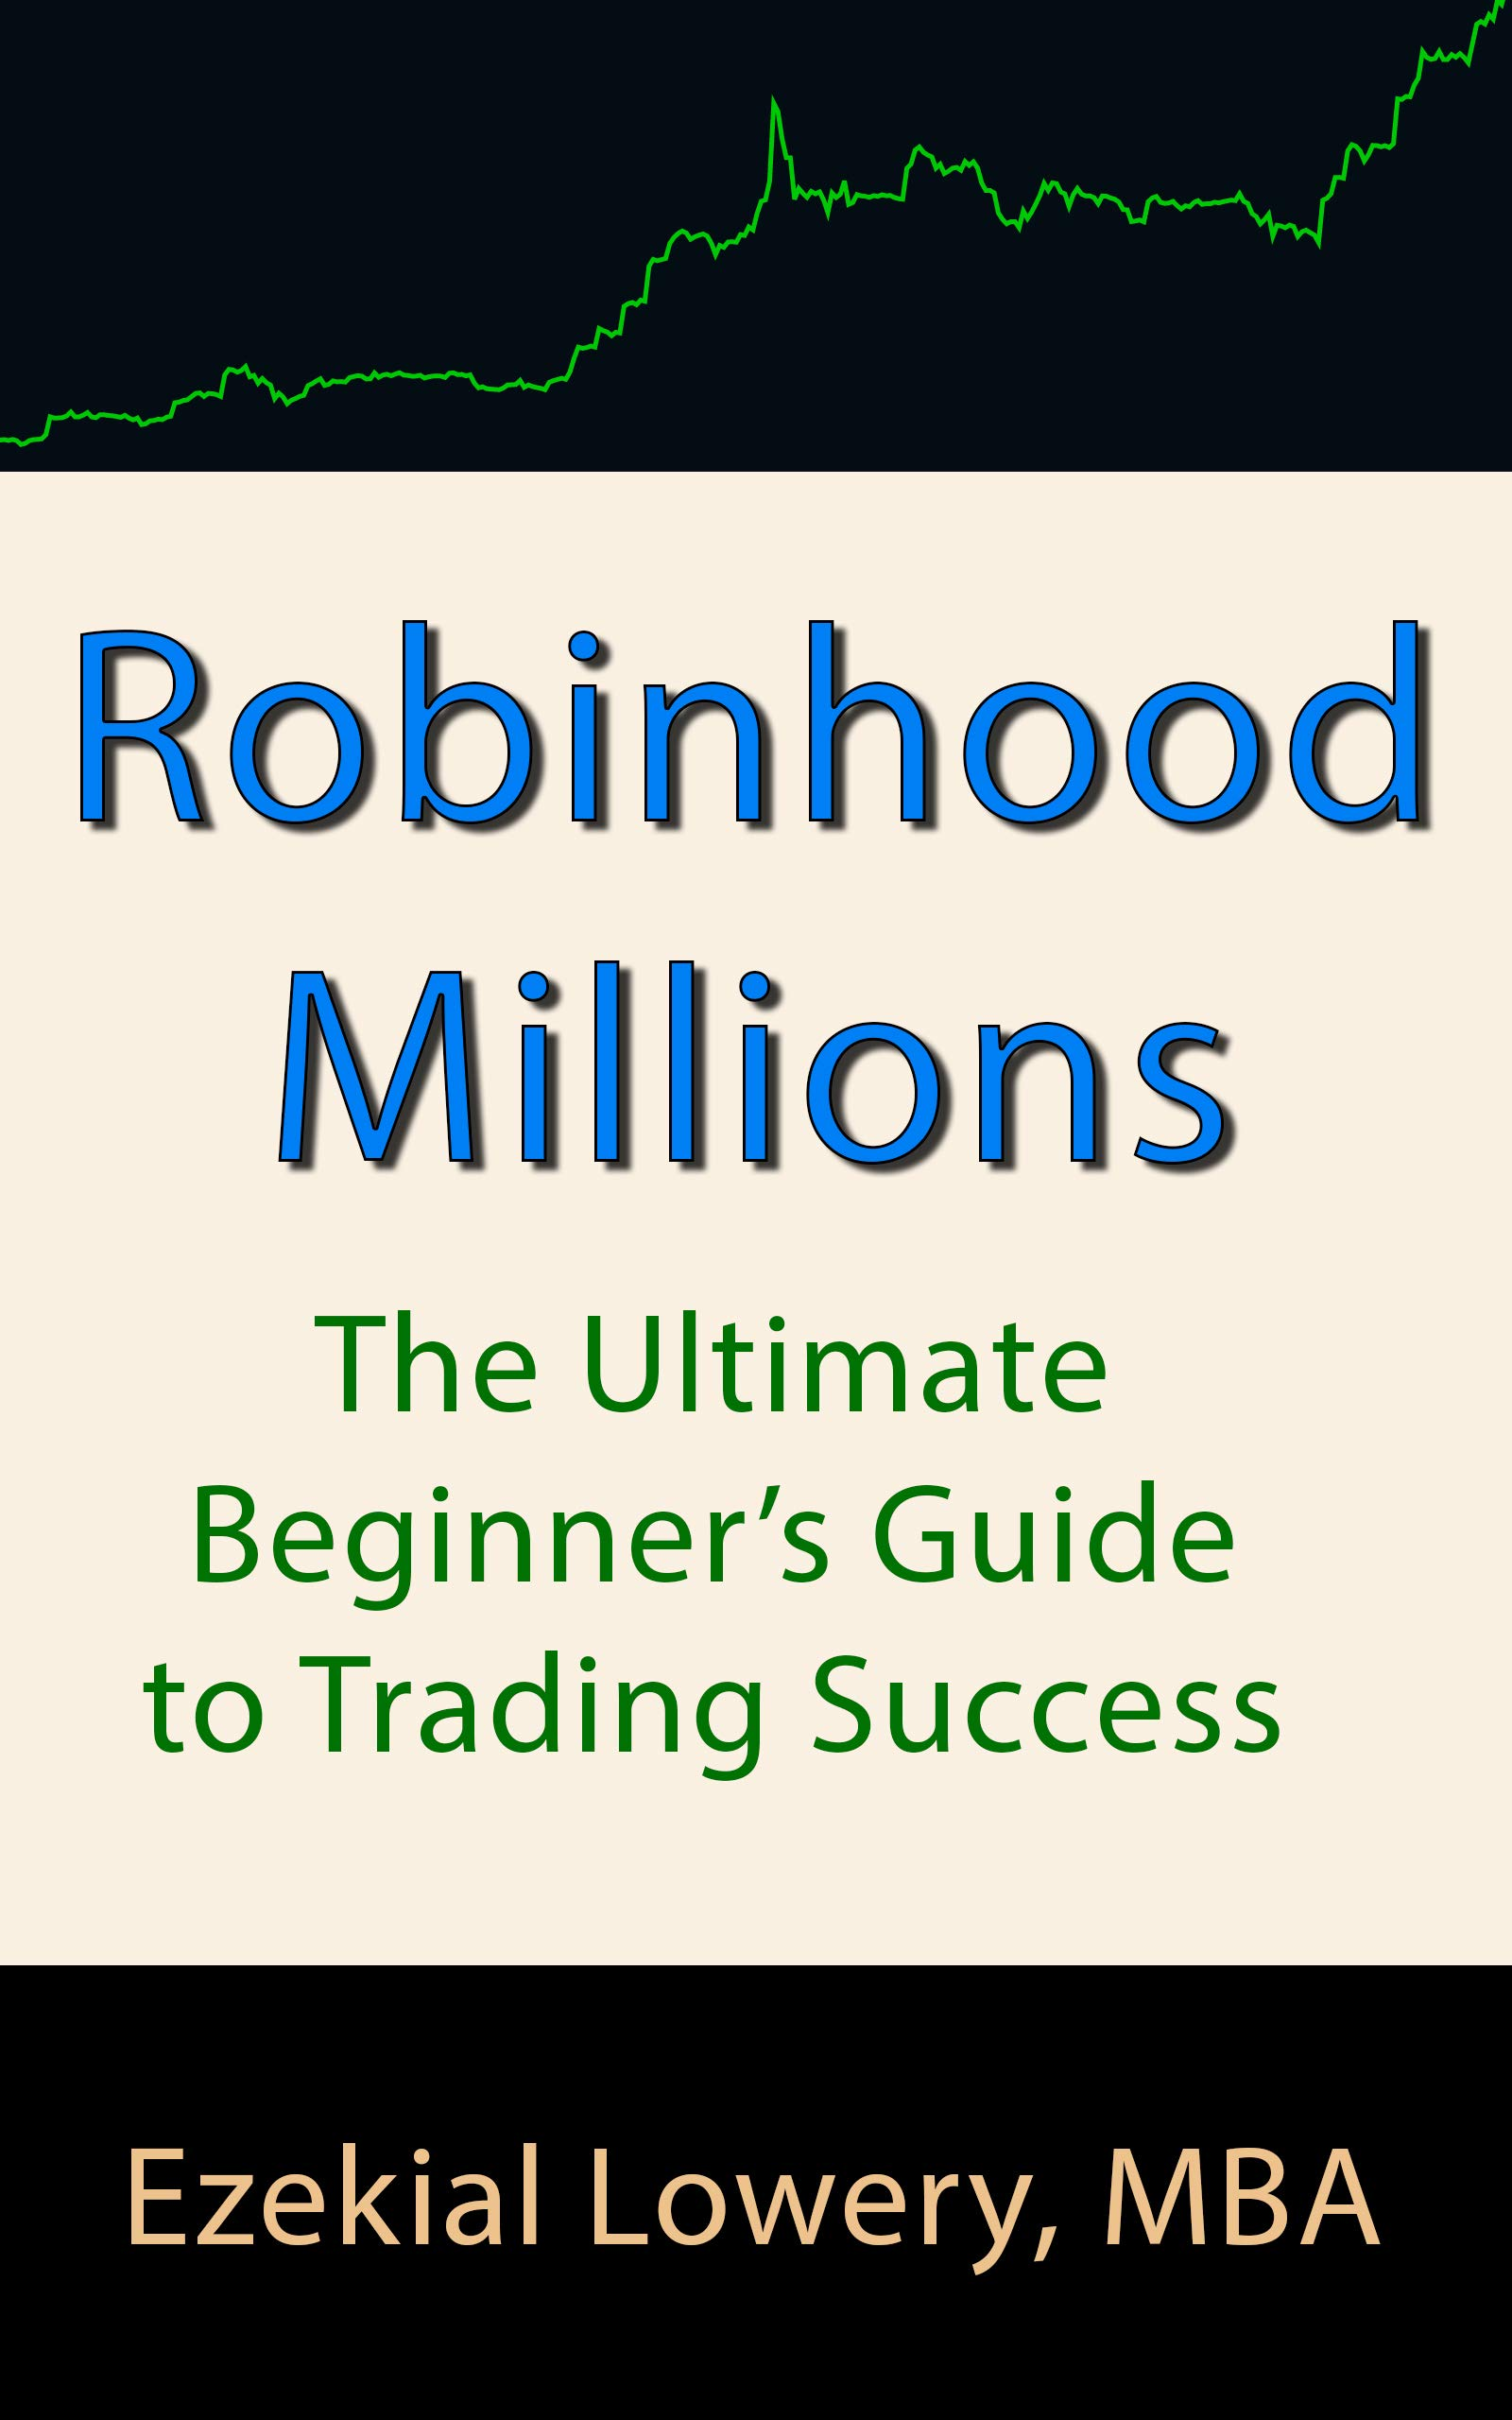 Robinhood Millions: The Ultimate Beginner's Guide to Trading Success (Market Trading Mastery Book 1)